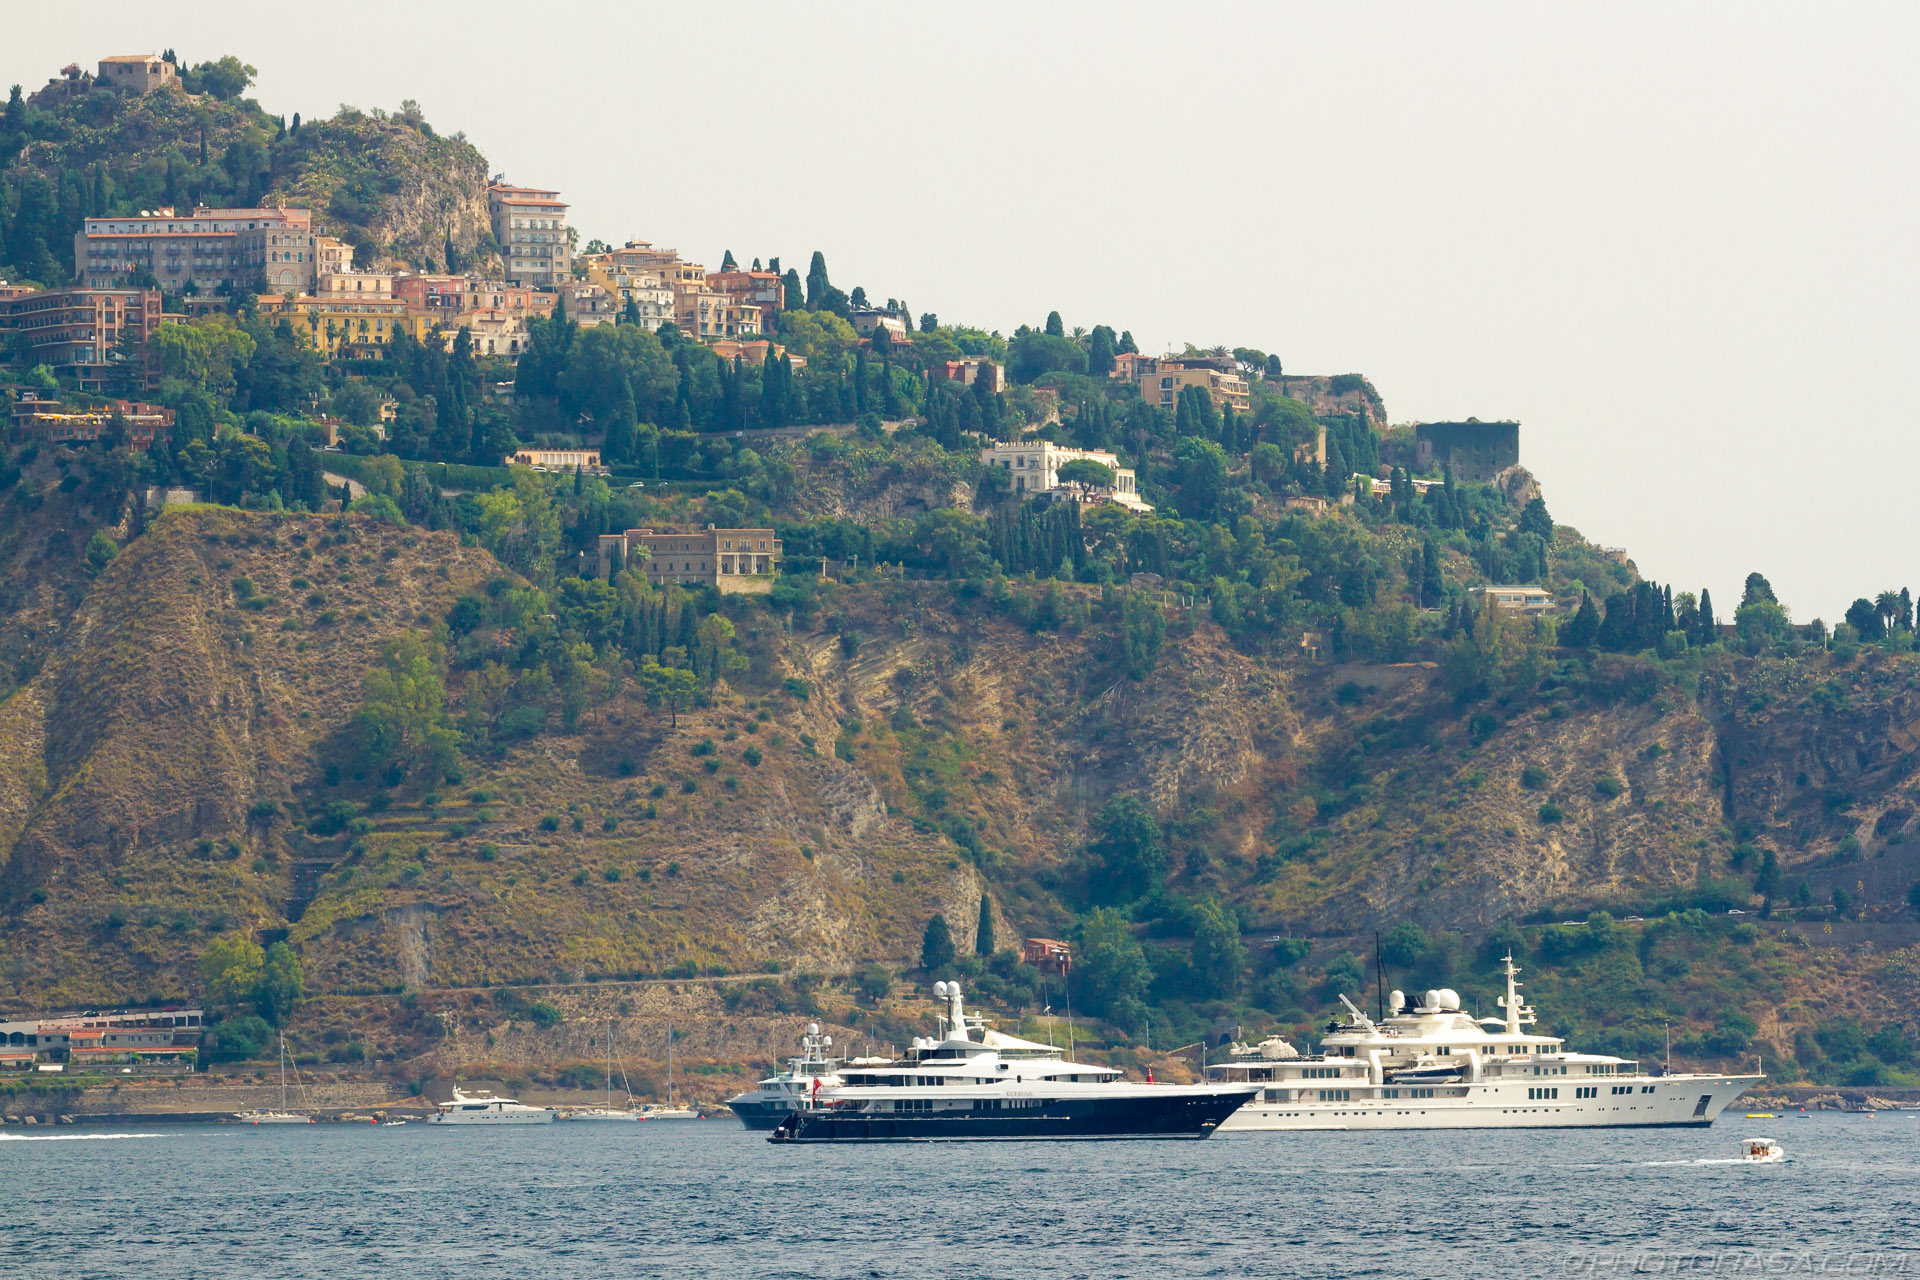 https://photorasa.com/taormina/super-yachts-near-taormina/